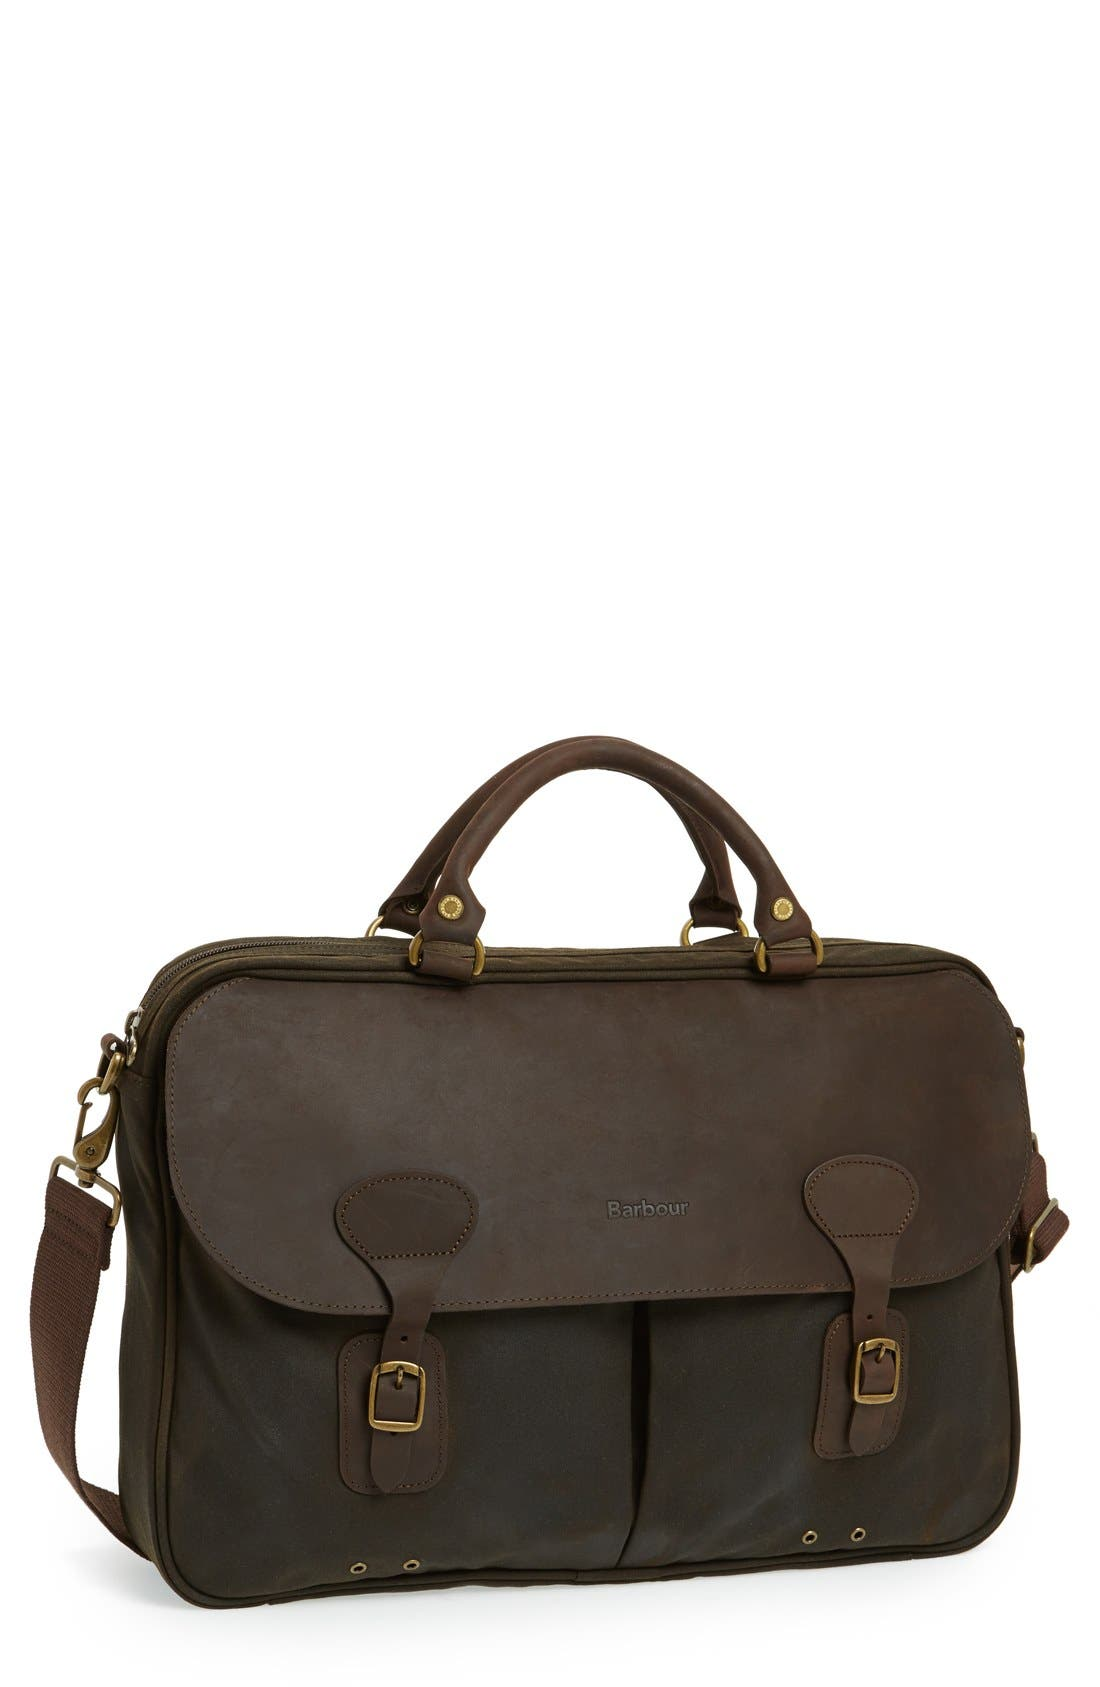 Waxed Canvas Briefcase,                         Main,                         color, OLIVE/ BROWN